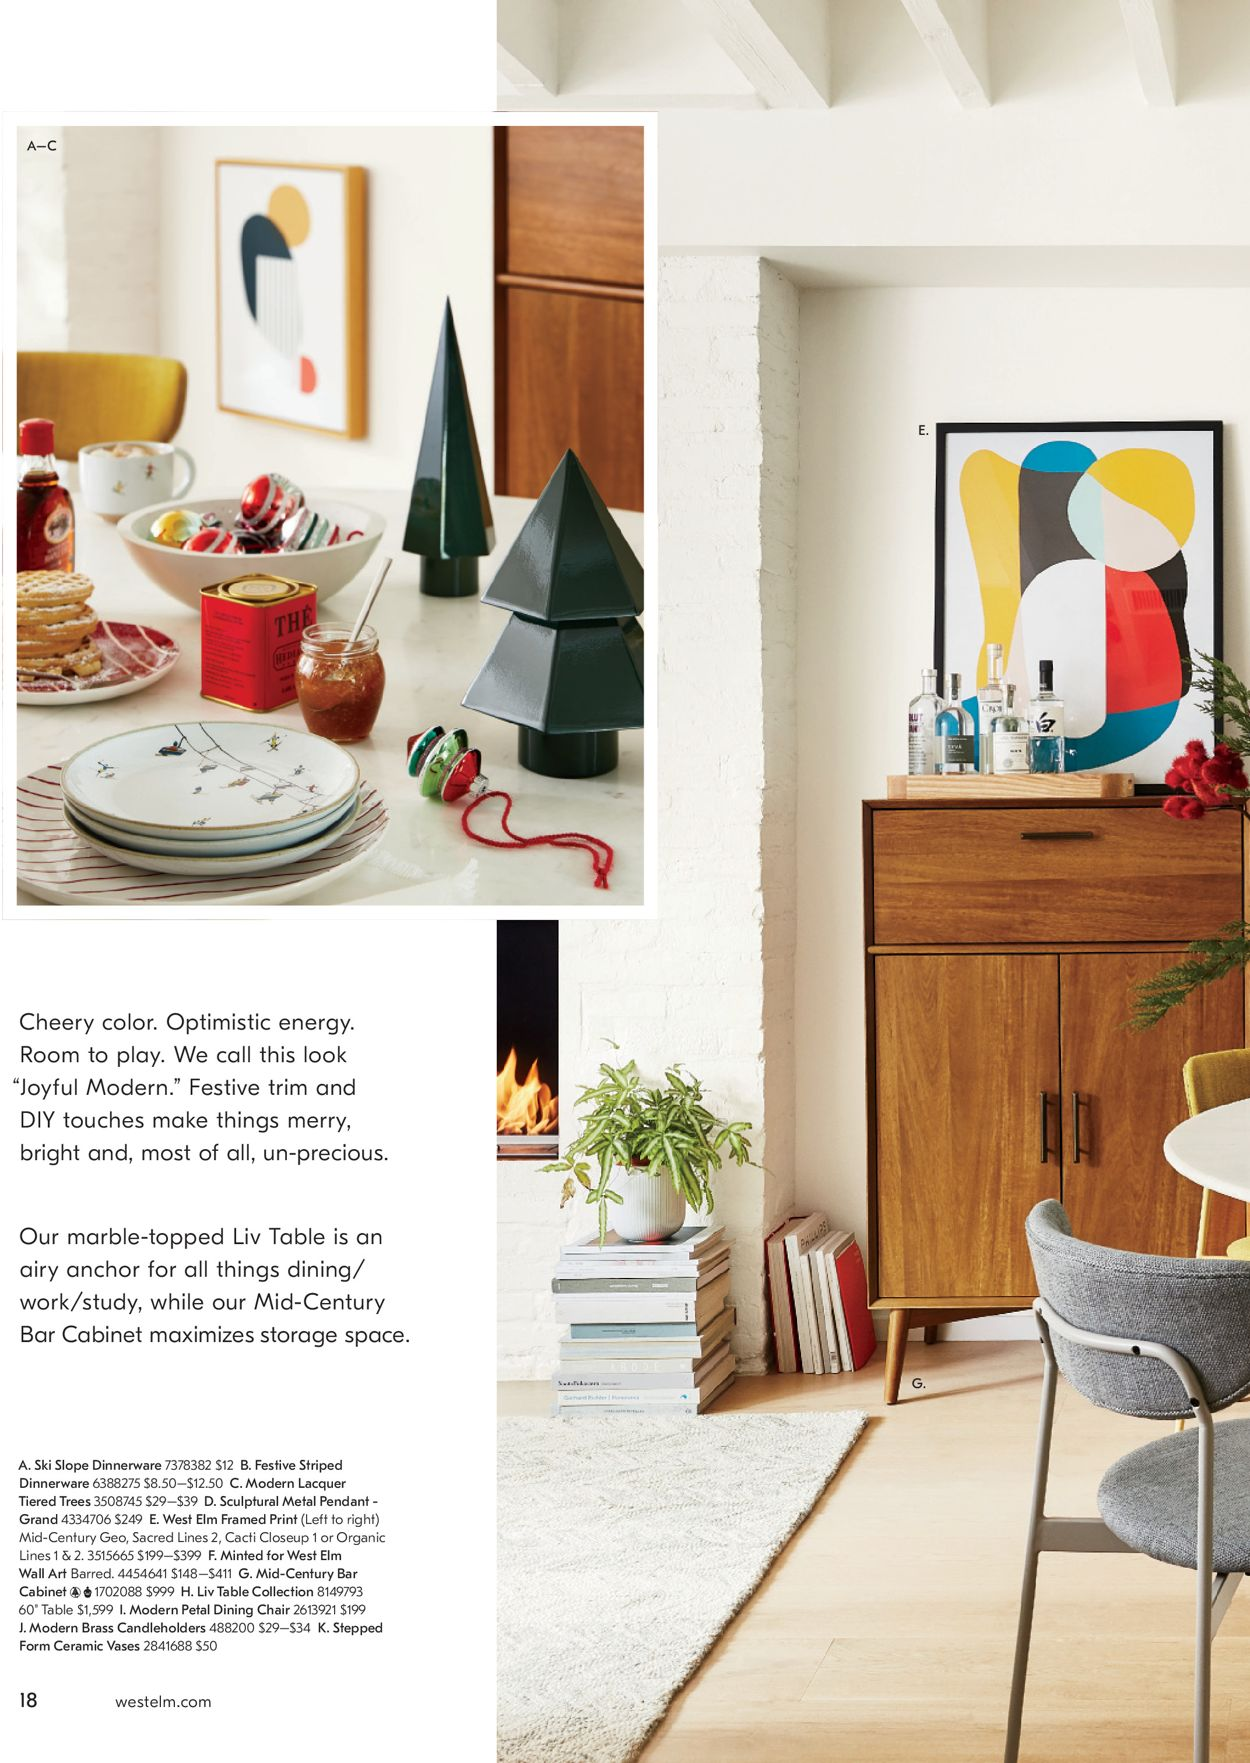 West Elm Current Weekly Ad 10 20 12 31 2020 18 Frequent Ads Com